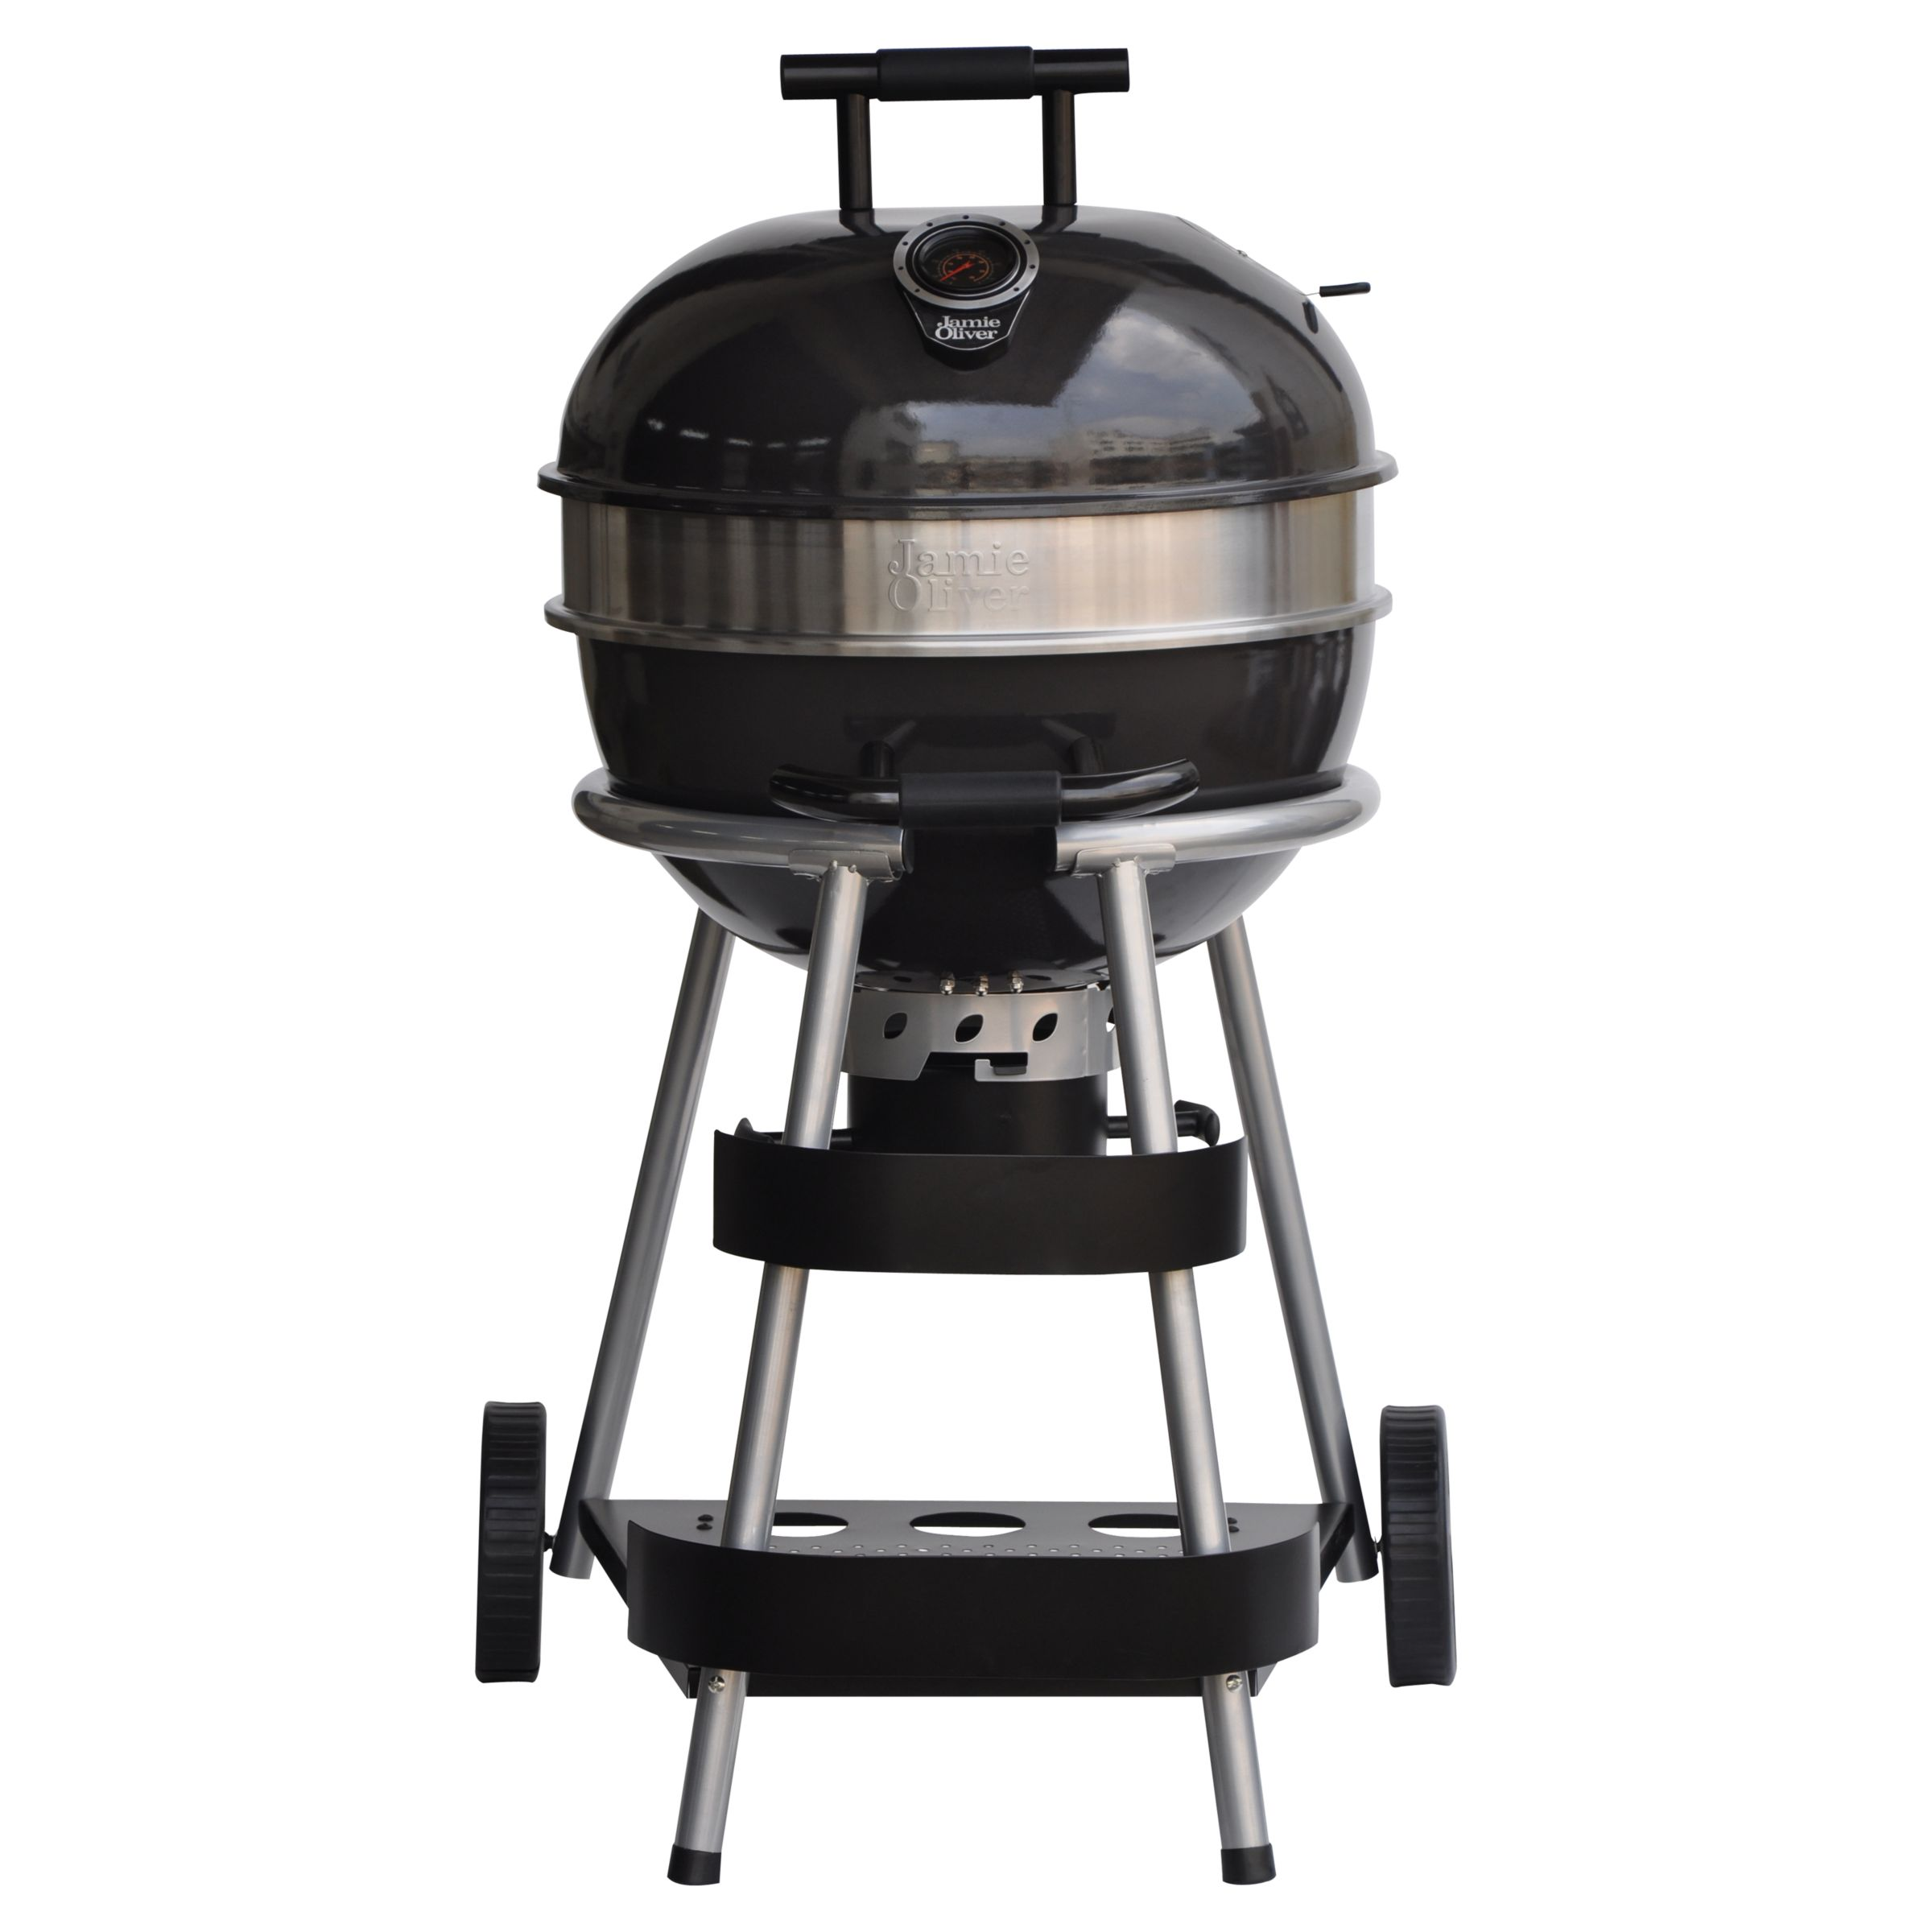 Jamie Oliver The Classic Charcoal Kettle Barbecue, Black